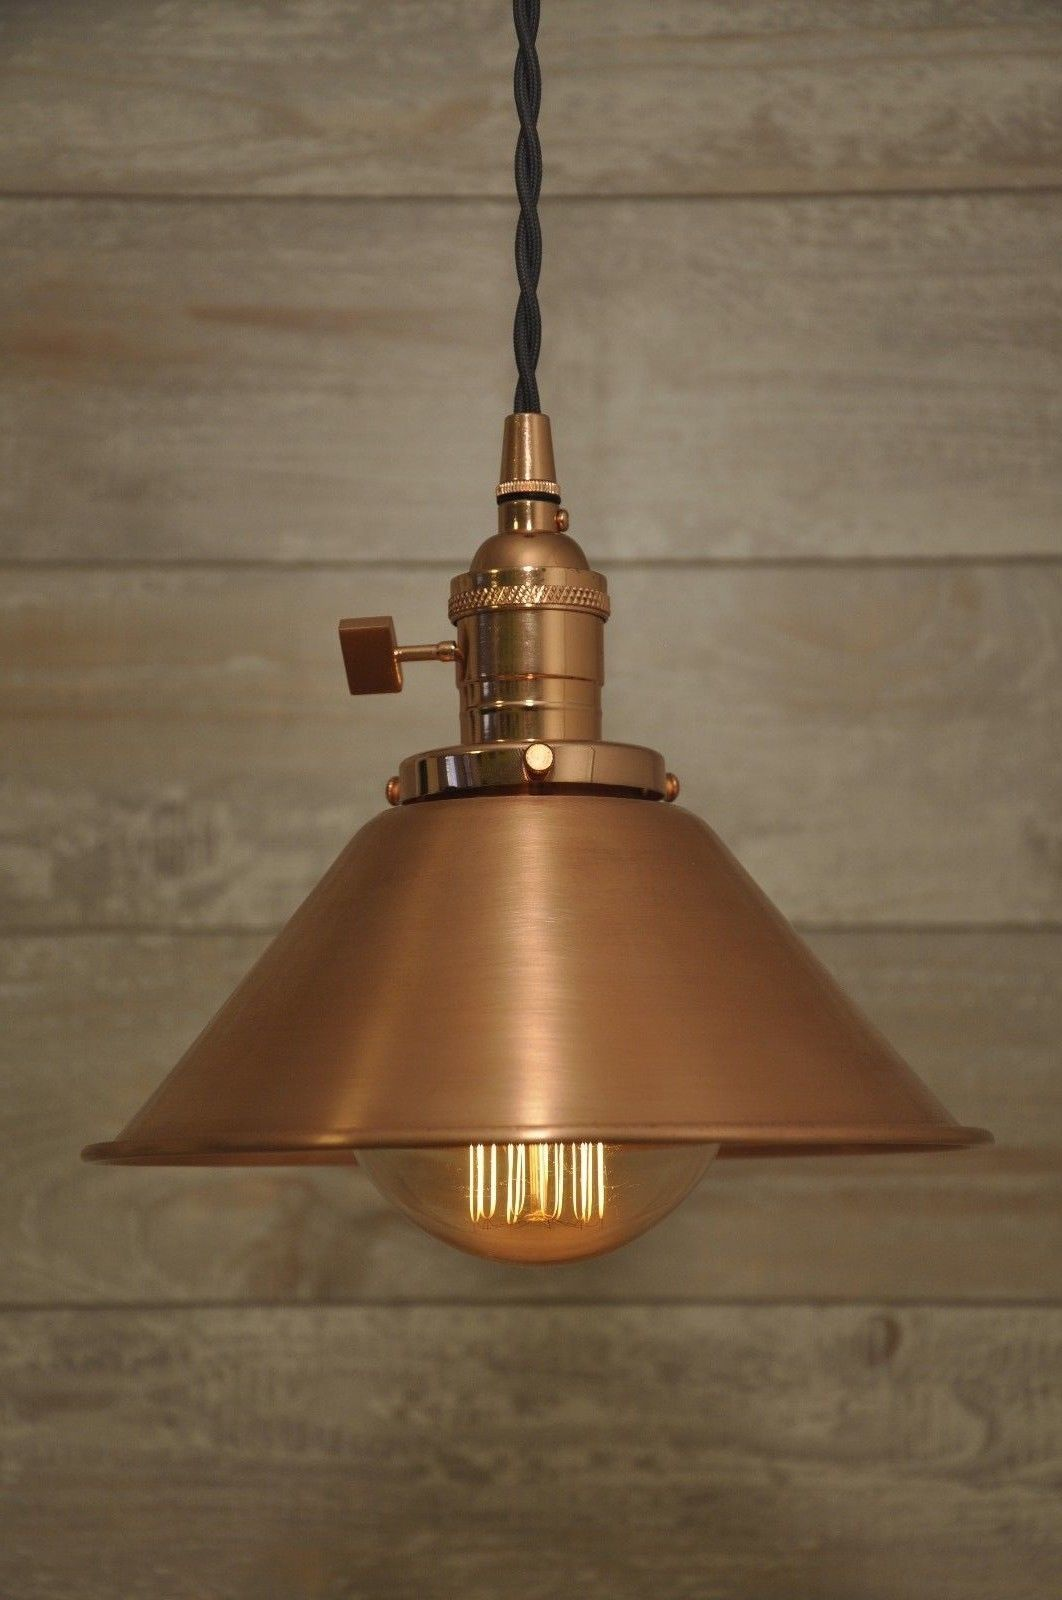 Copper Kitchen Light Fixtures Details About Brushed Copper Spun Cone Industrial Pendant Light